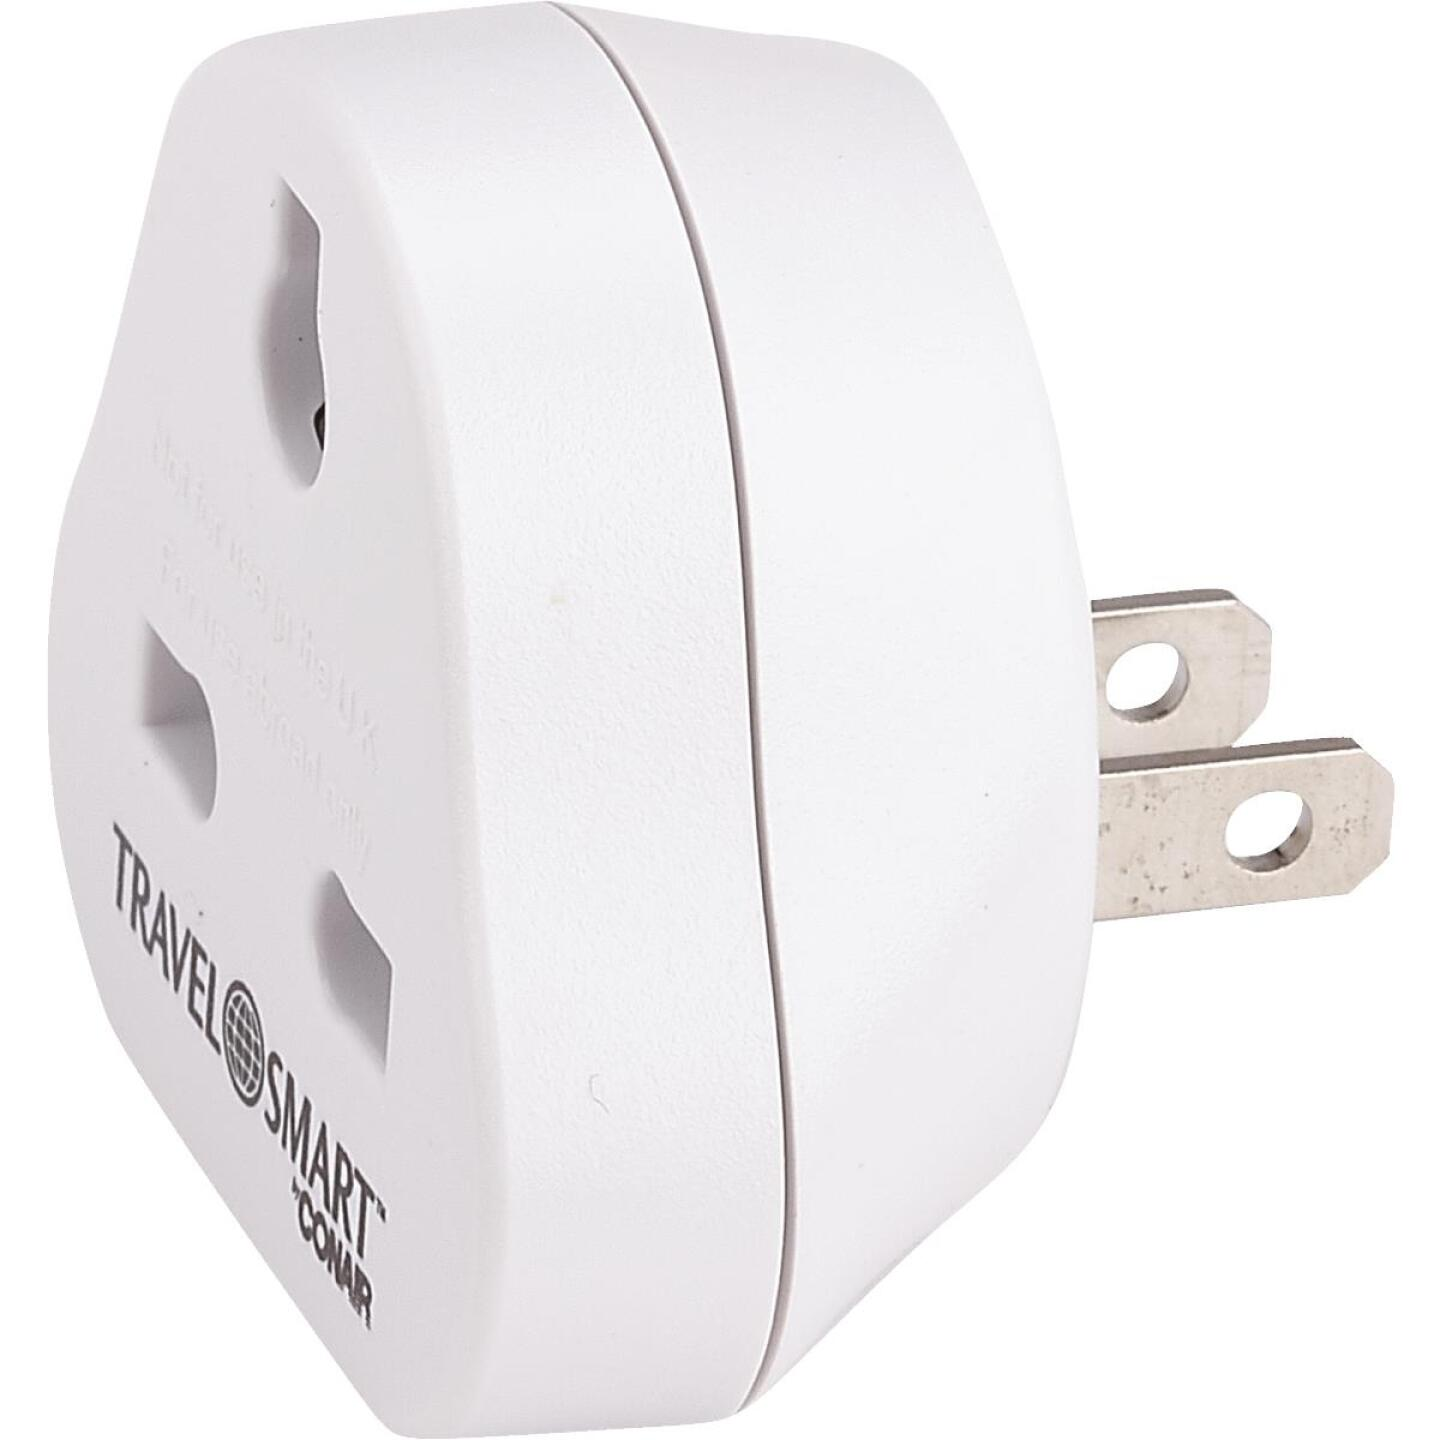 Franzus Travel Smart 3-Blade Combination UK Plug Adapter, North America/South America/Caribbean/Japan Image 1